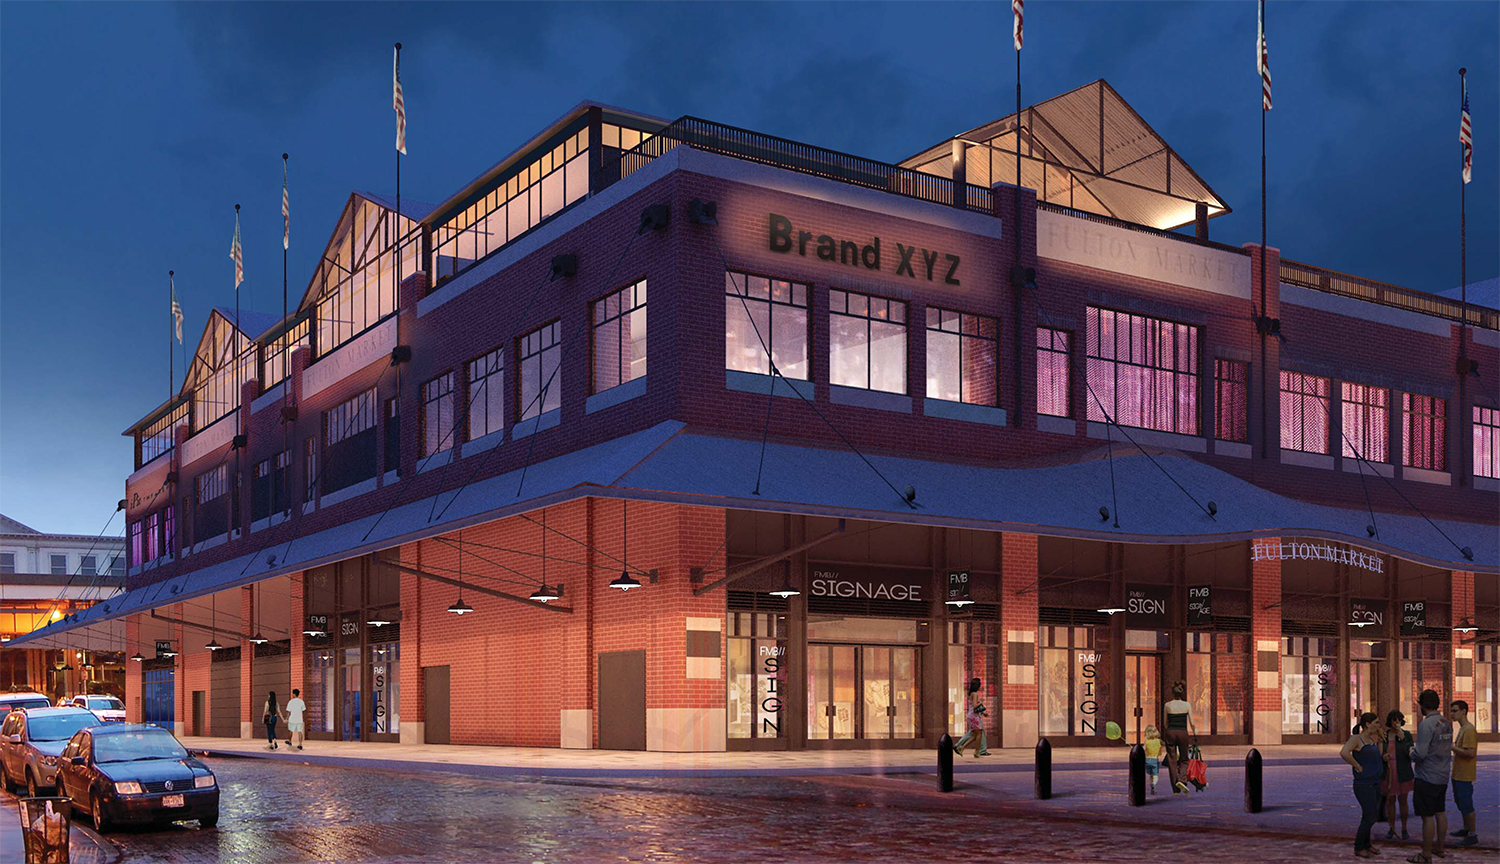 Proposal for Fulton Market Building, viewed from Beekman and Front streets, night rendering